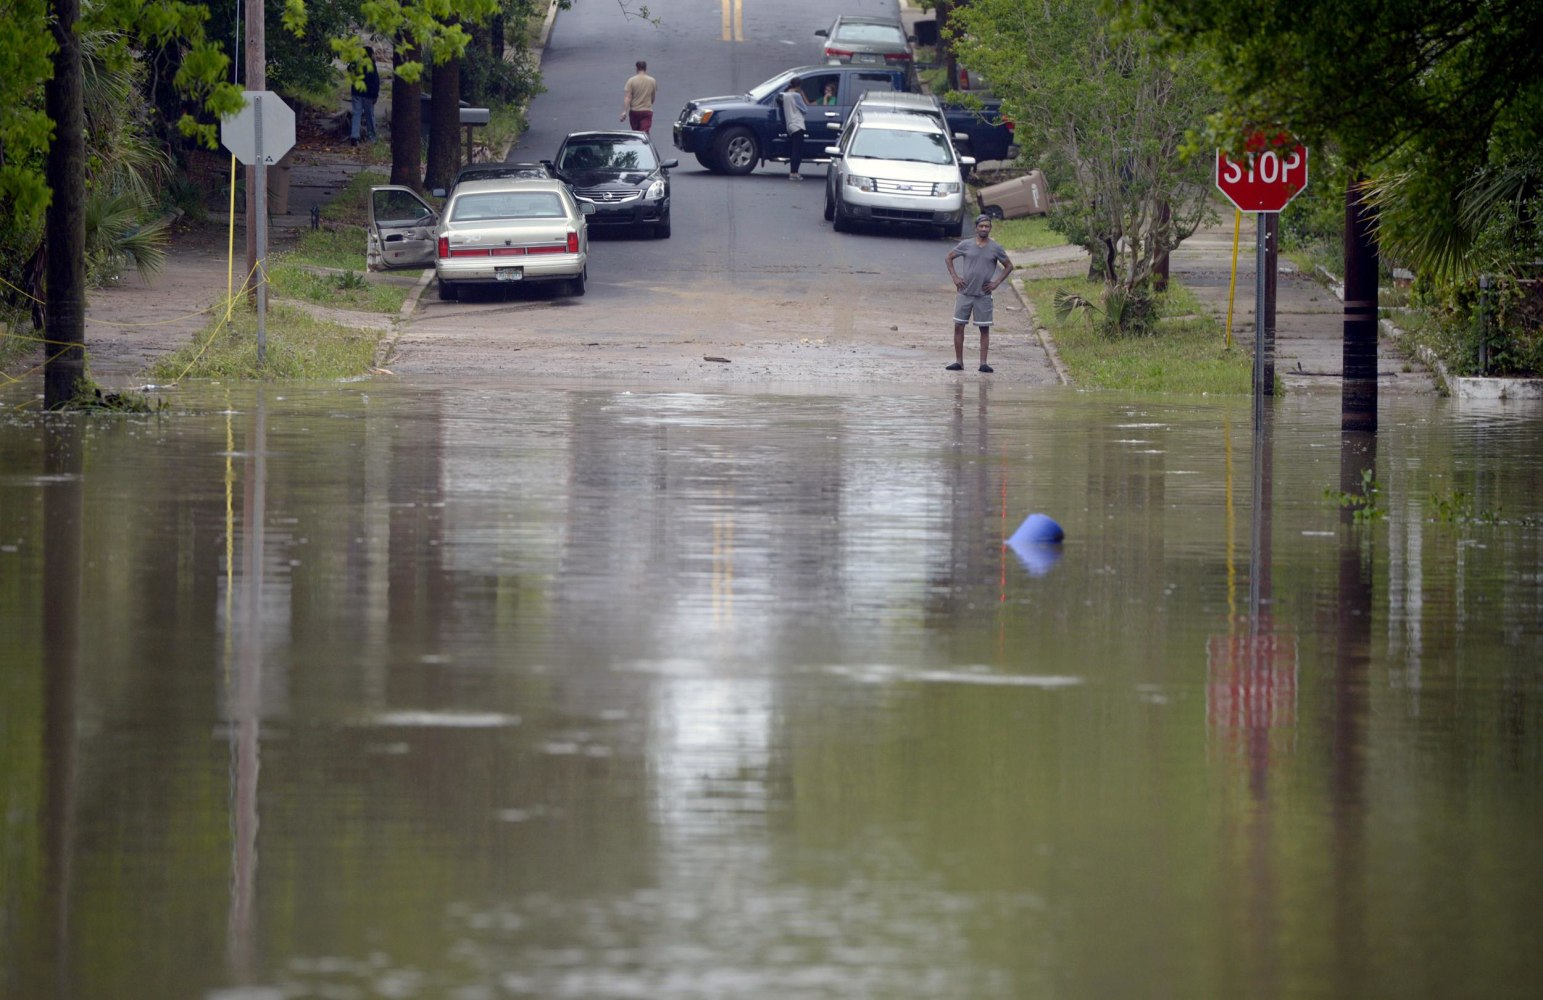 Pensacola fl flooding pictures Abigail Adams Stock Photos and Pictures Getty Images